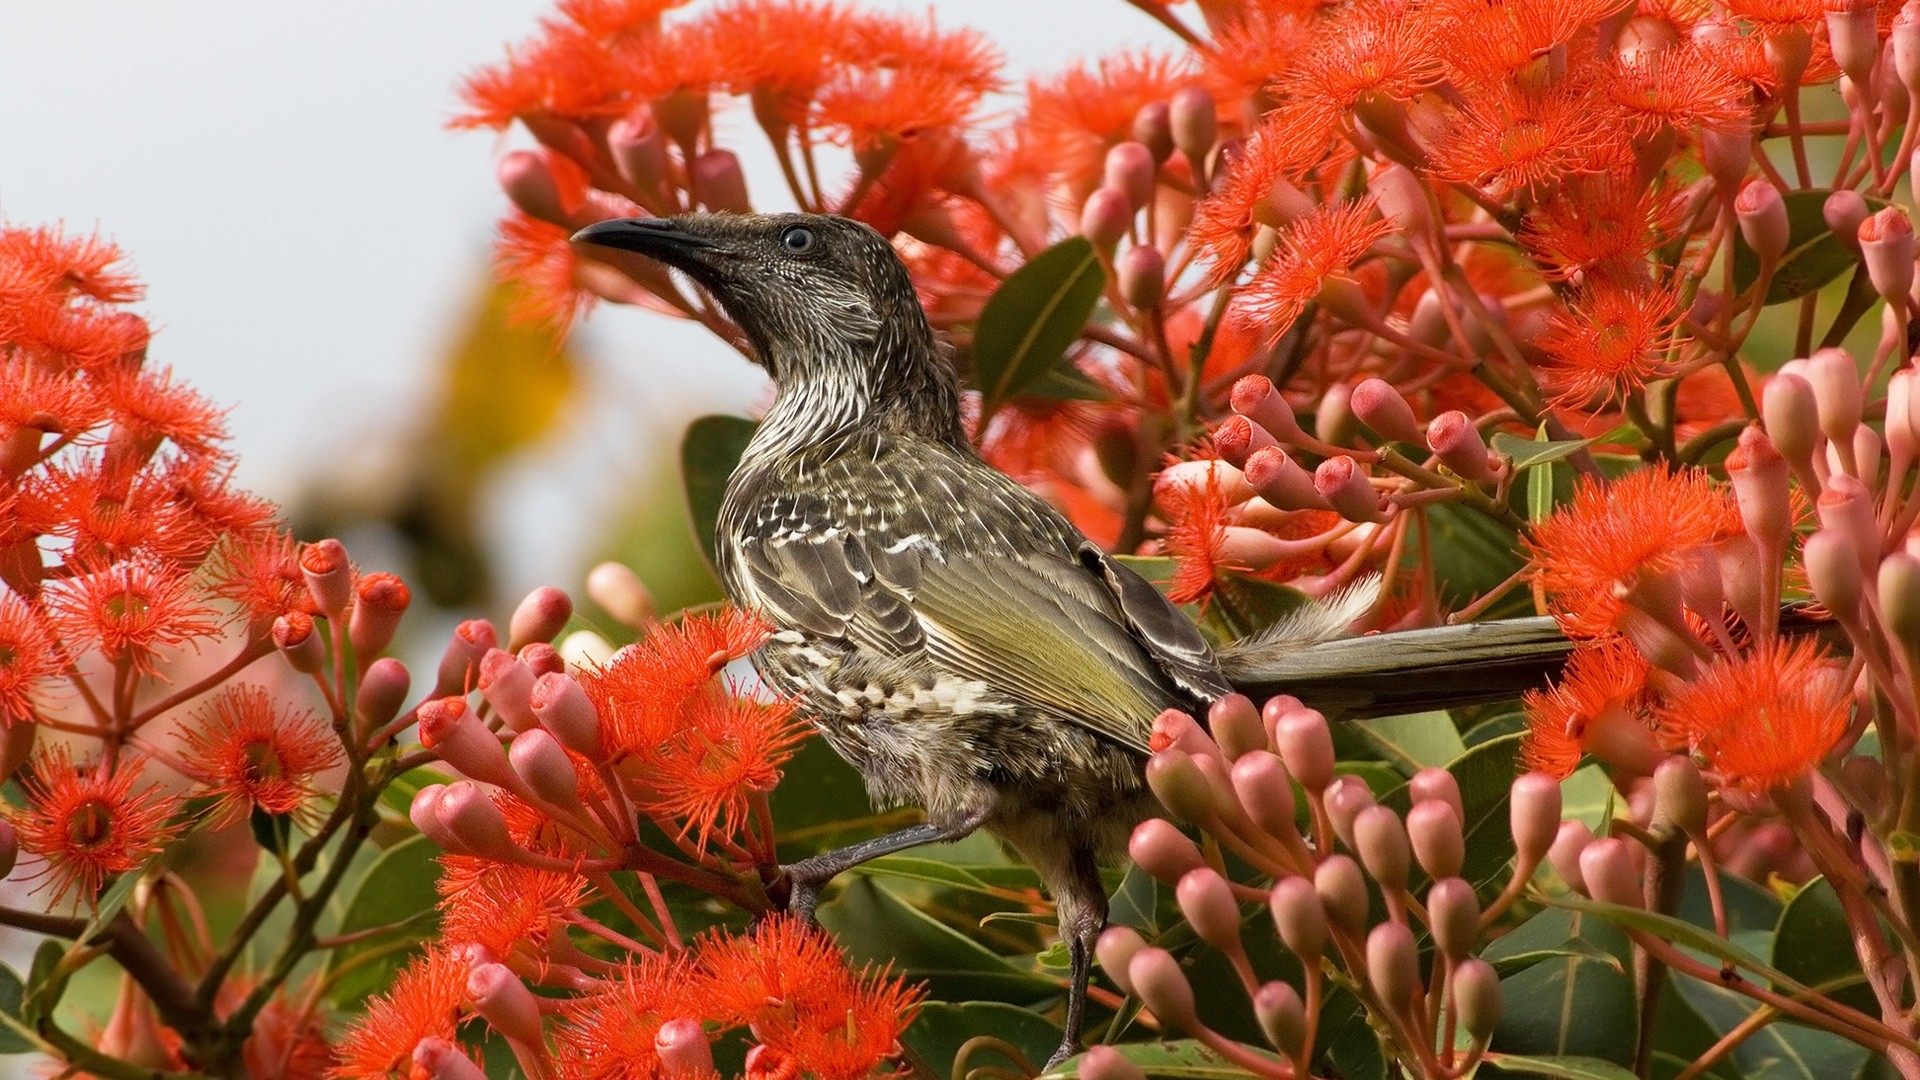 wallpaper birds and flowers which is under the birds wallpapers 1920x1080